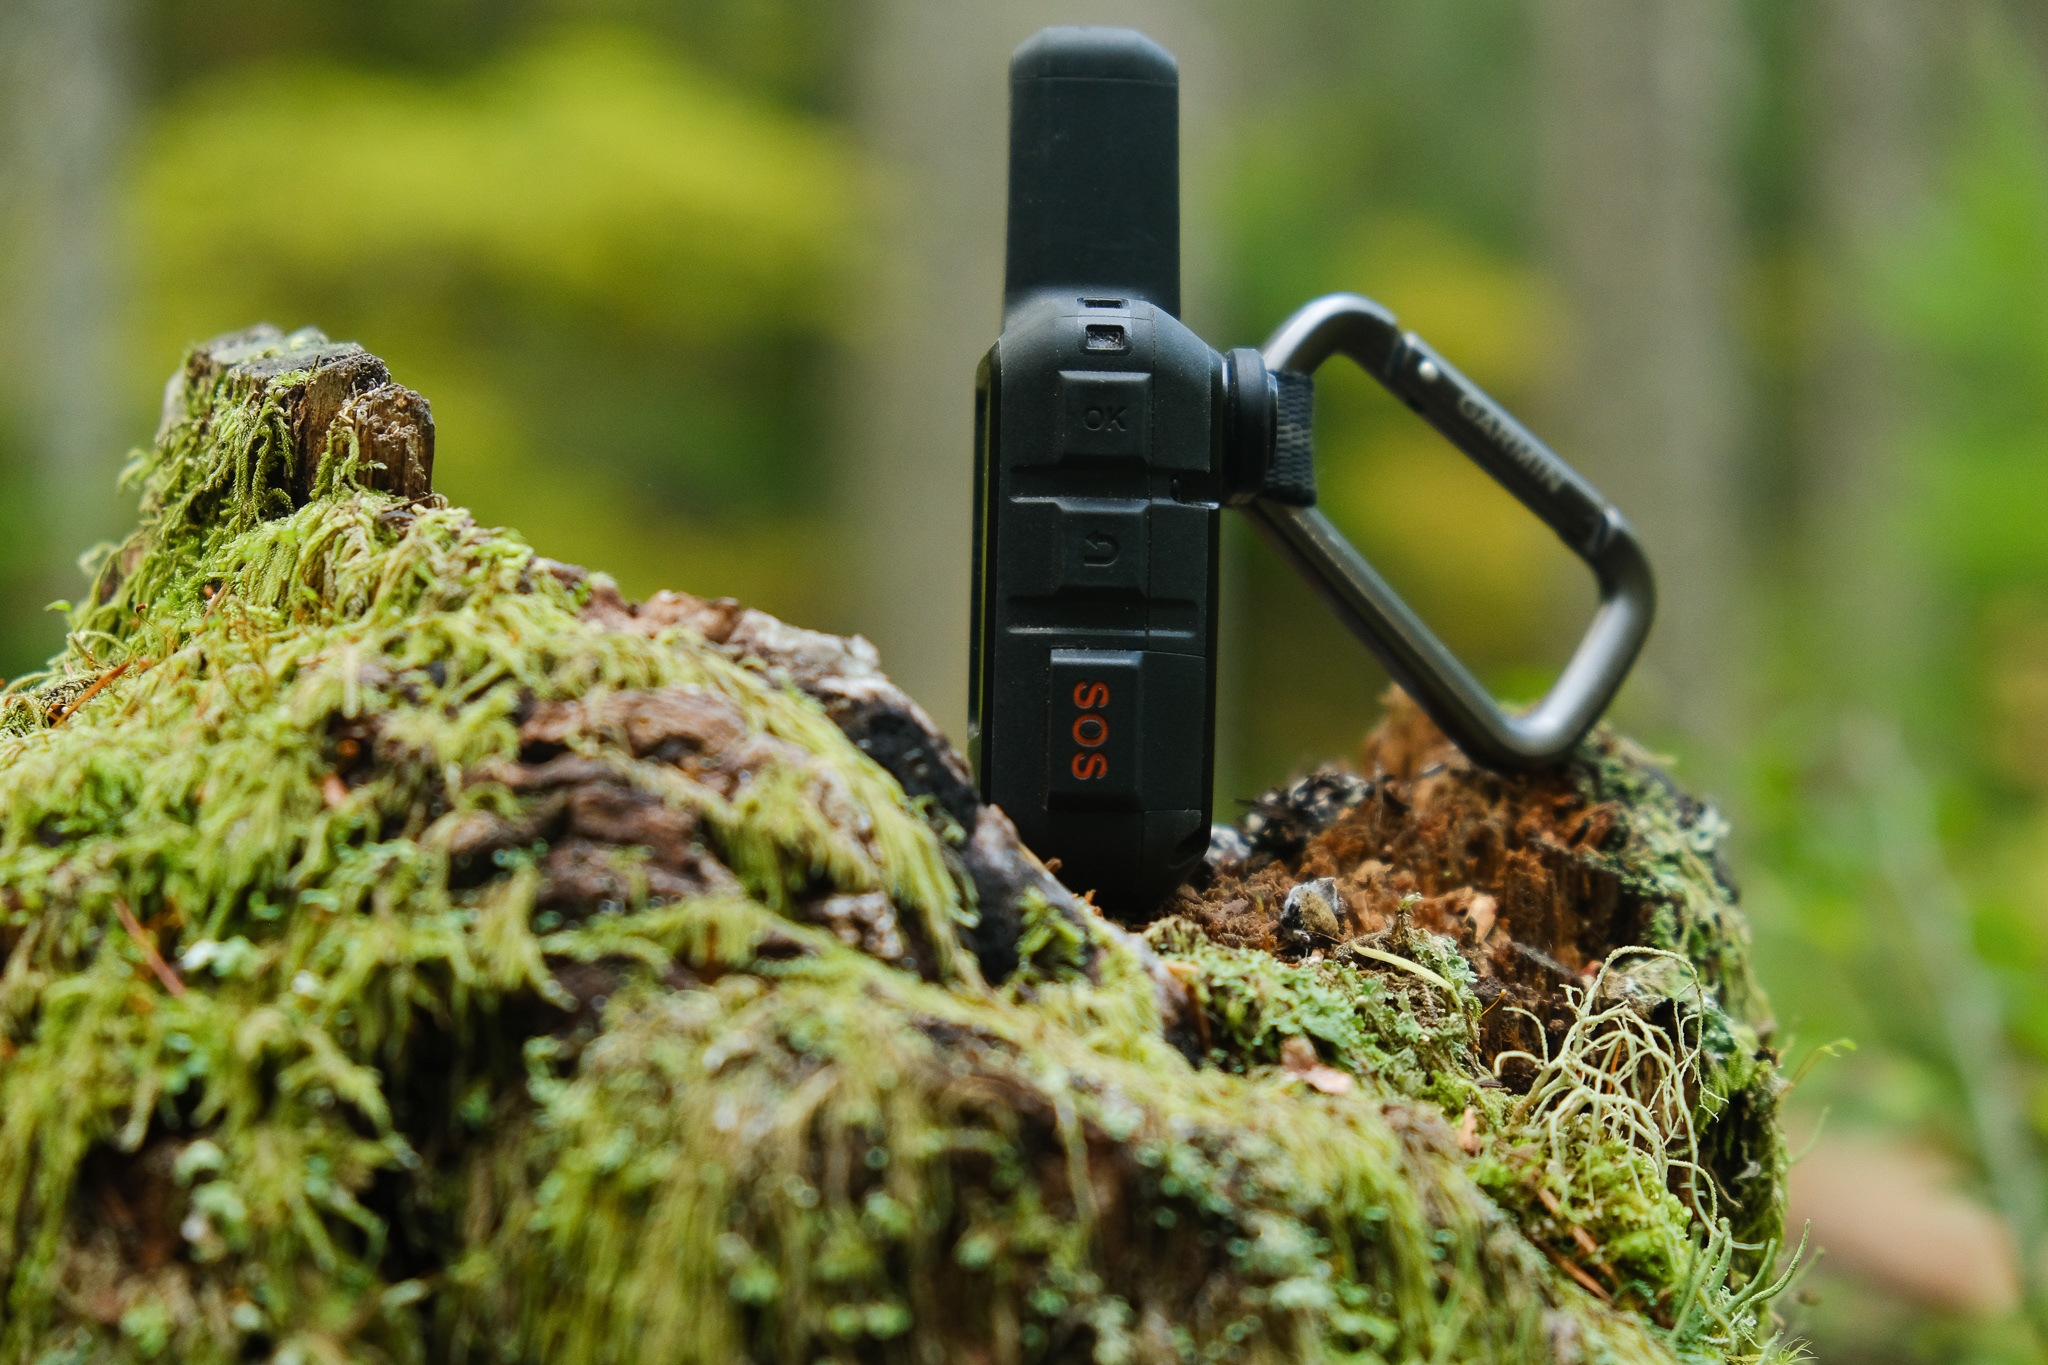 Garmin inreach mini review